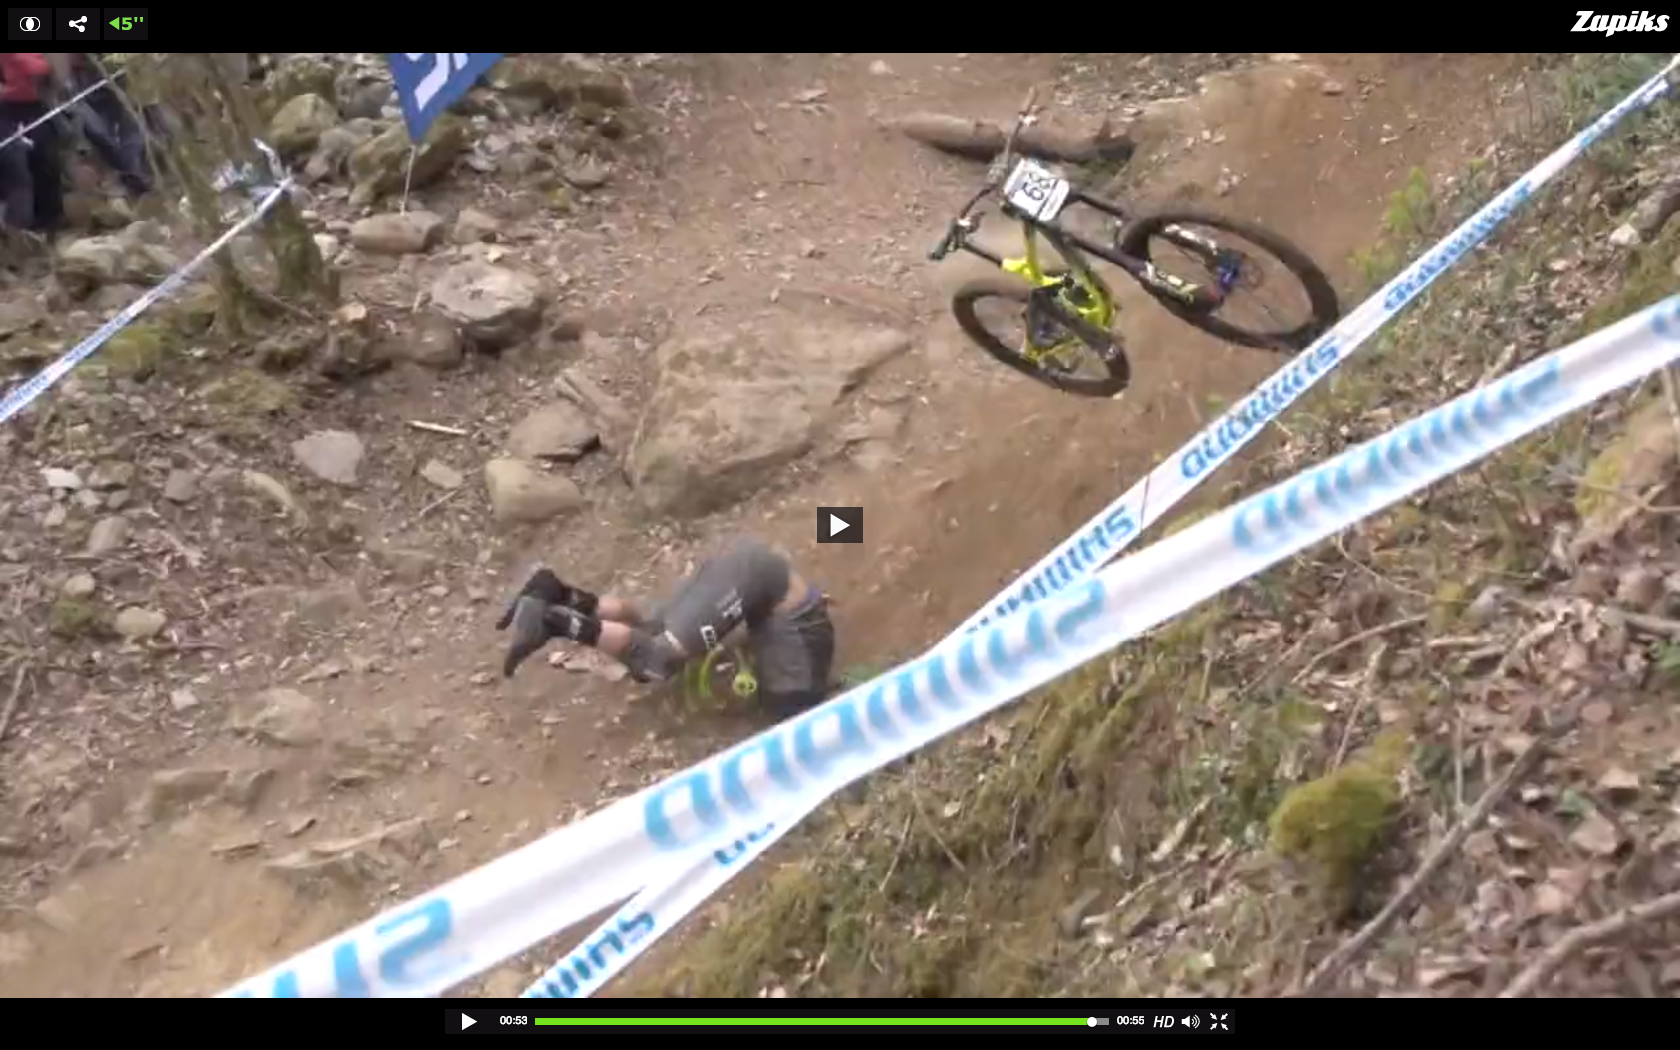 The Most Brutal Crashes from the Lourdes World Cup Downhill Race